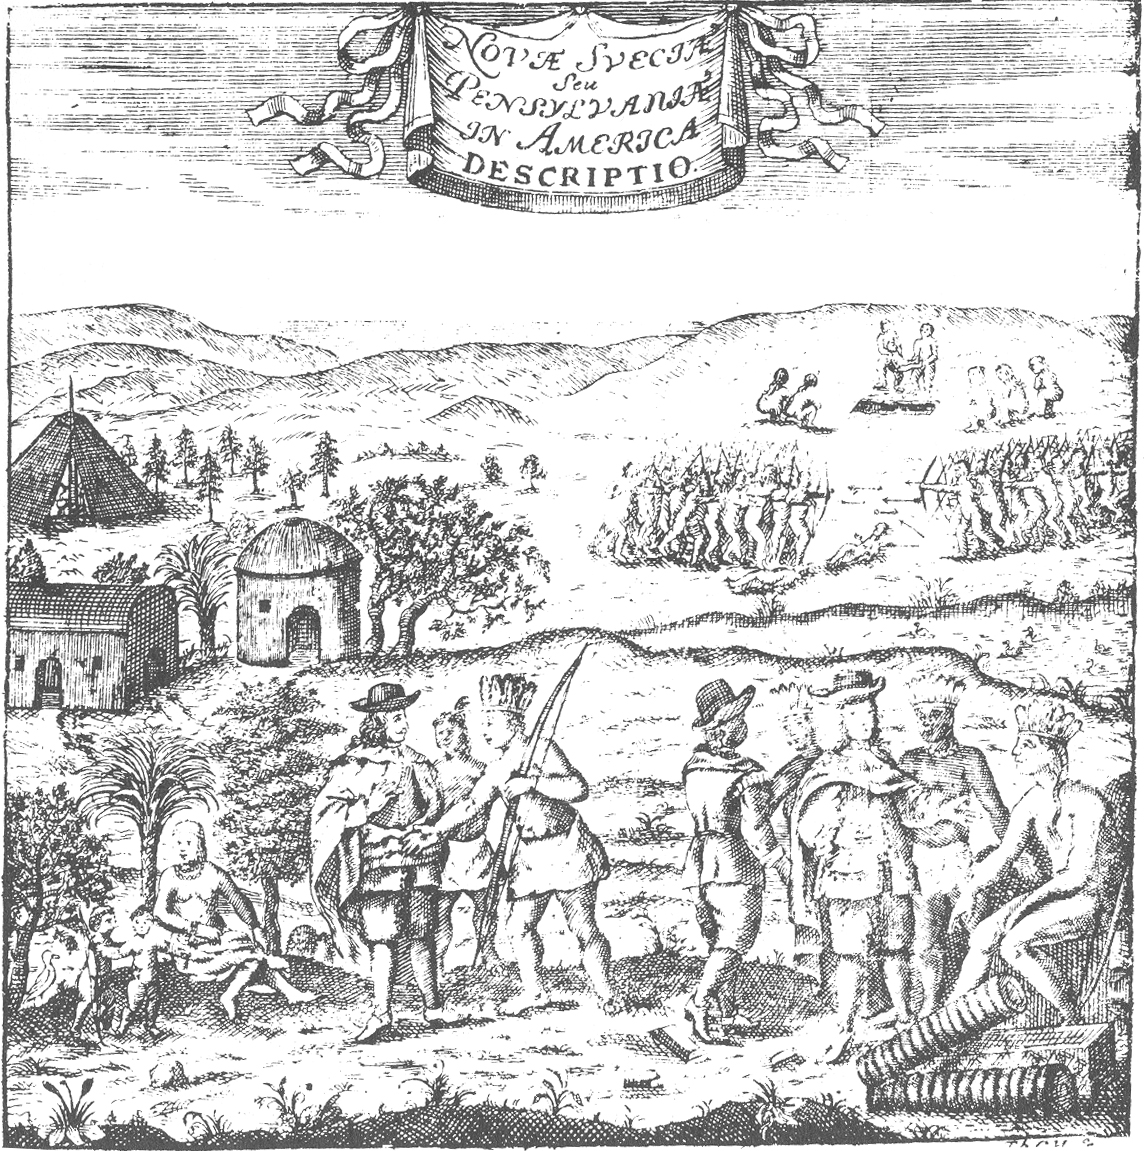 New Sweden - encounter between Swedish colonists and the natives of Delaware.